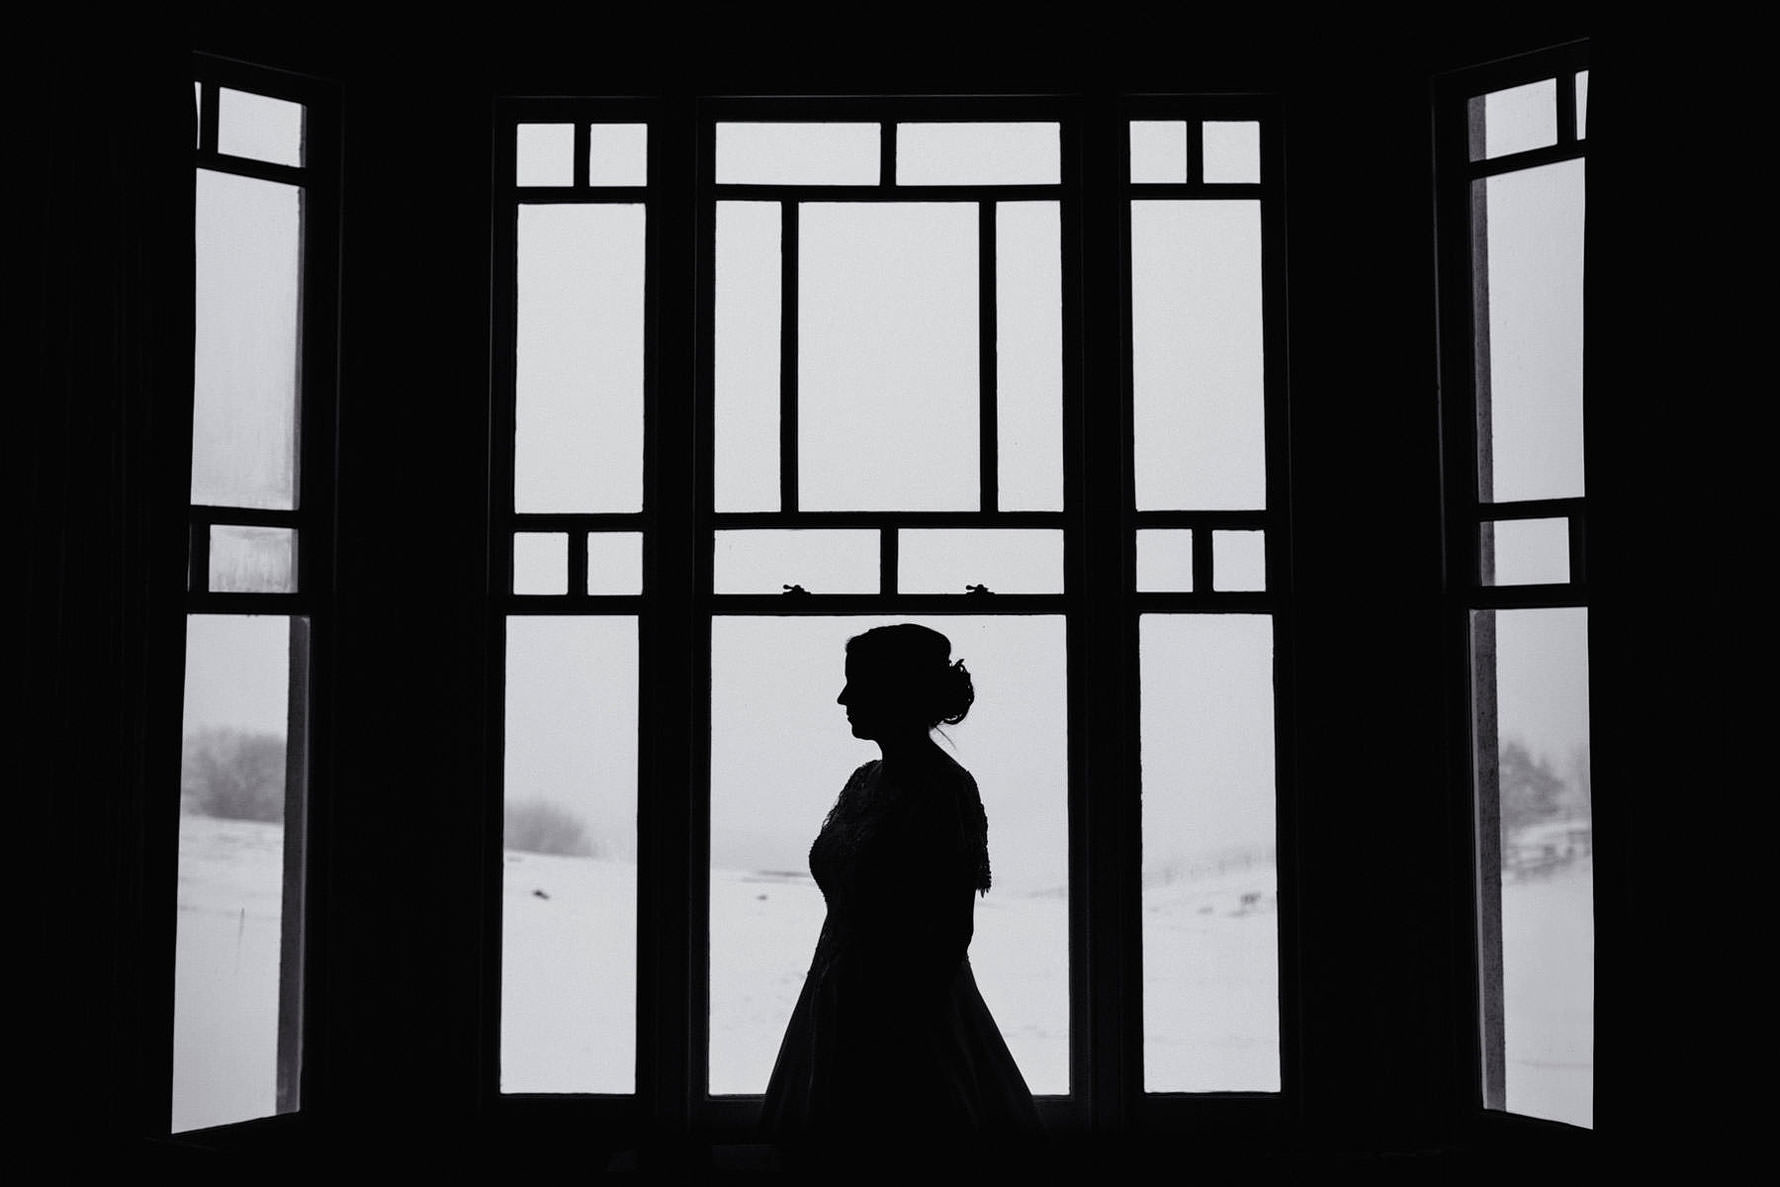 a black and white silhouette